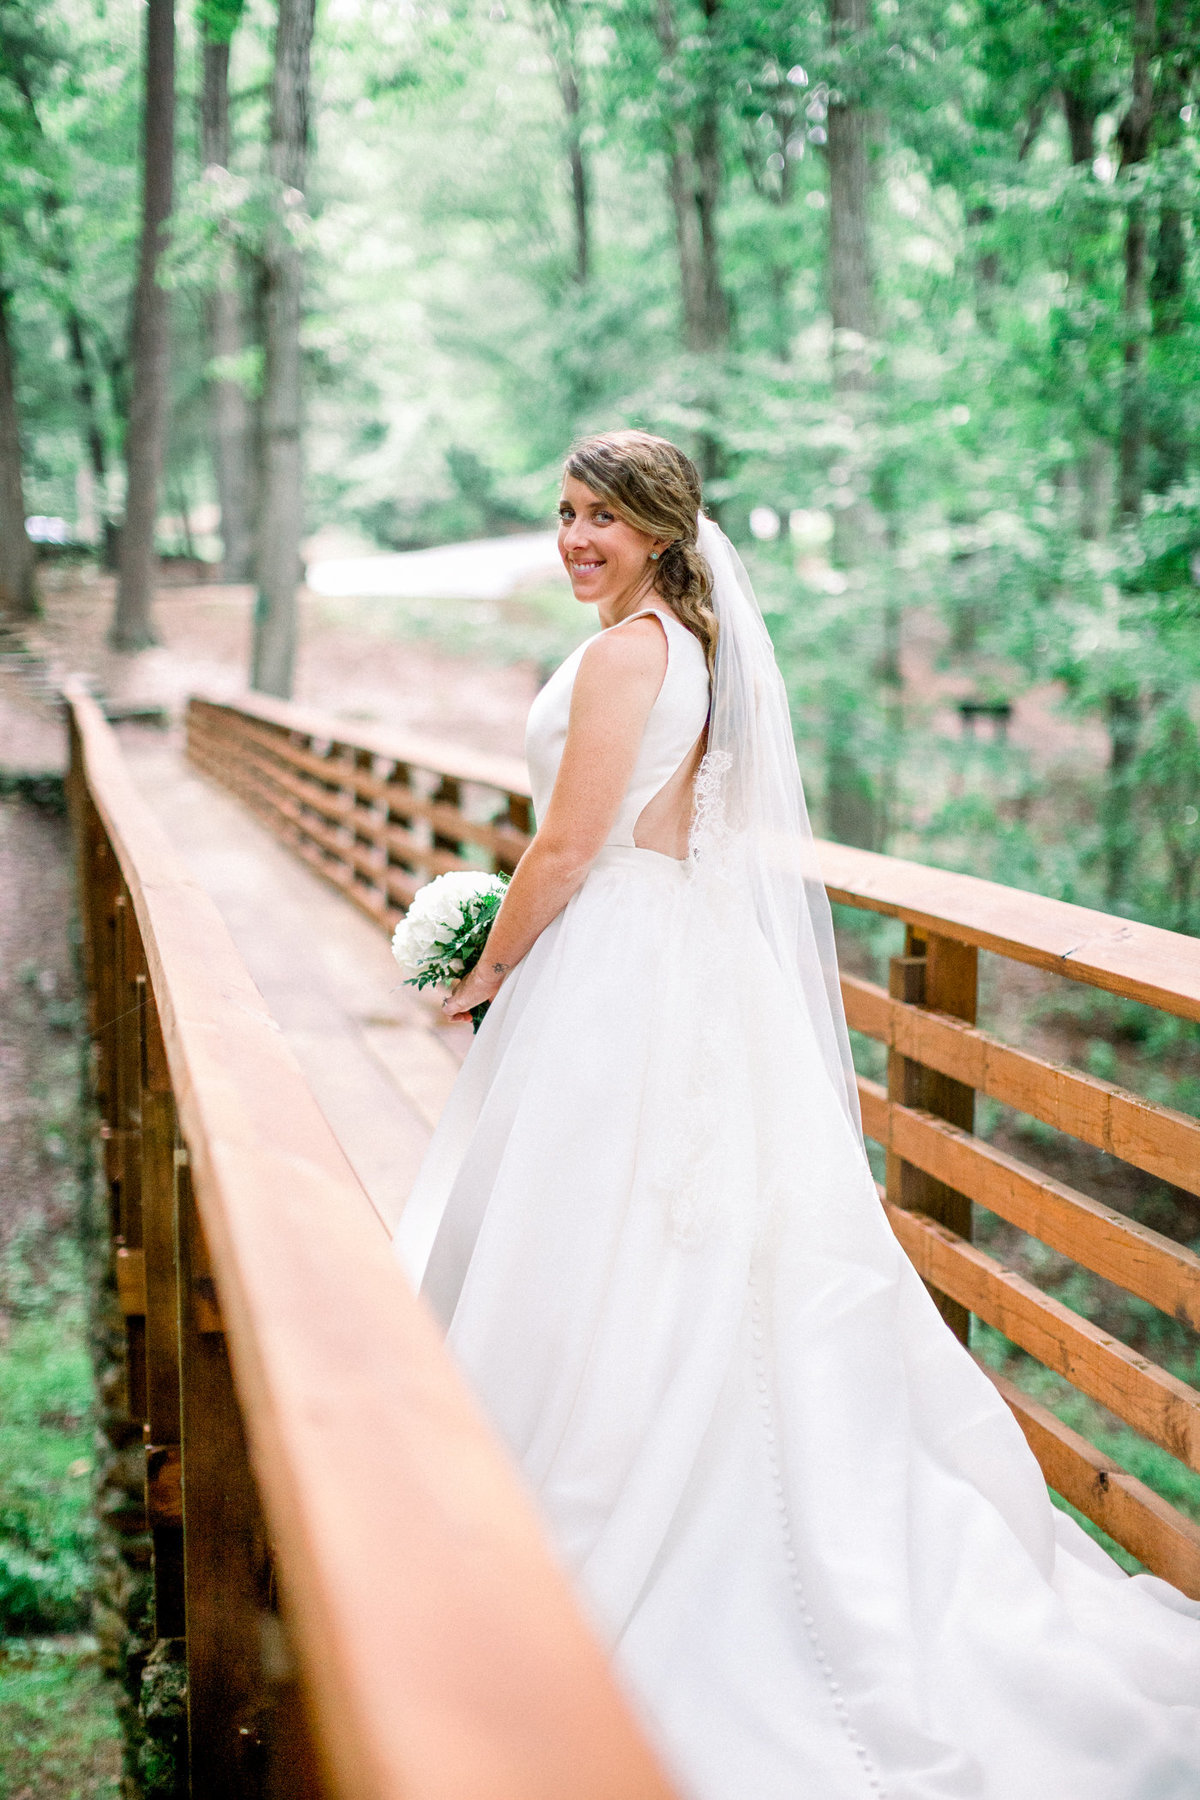 Alabama - Georiga Wedding Photographer Courtney Sample-2